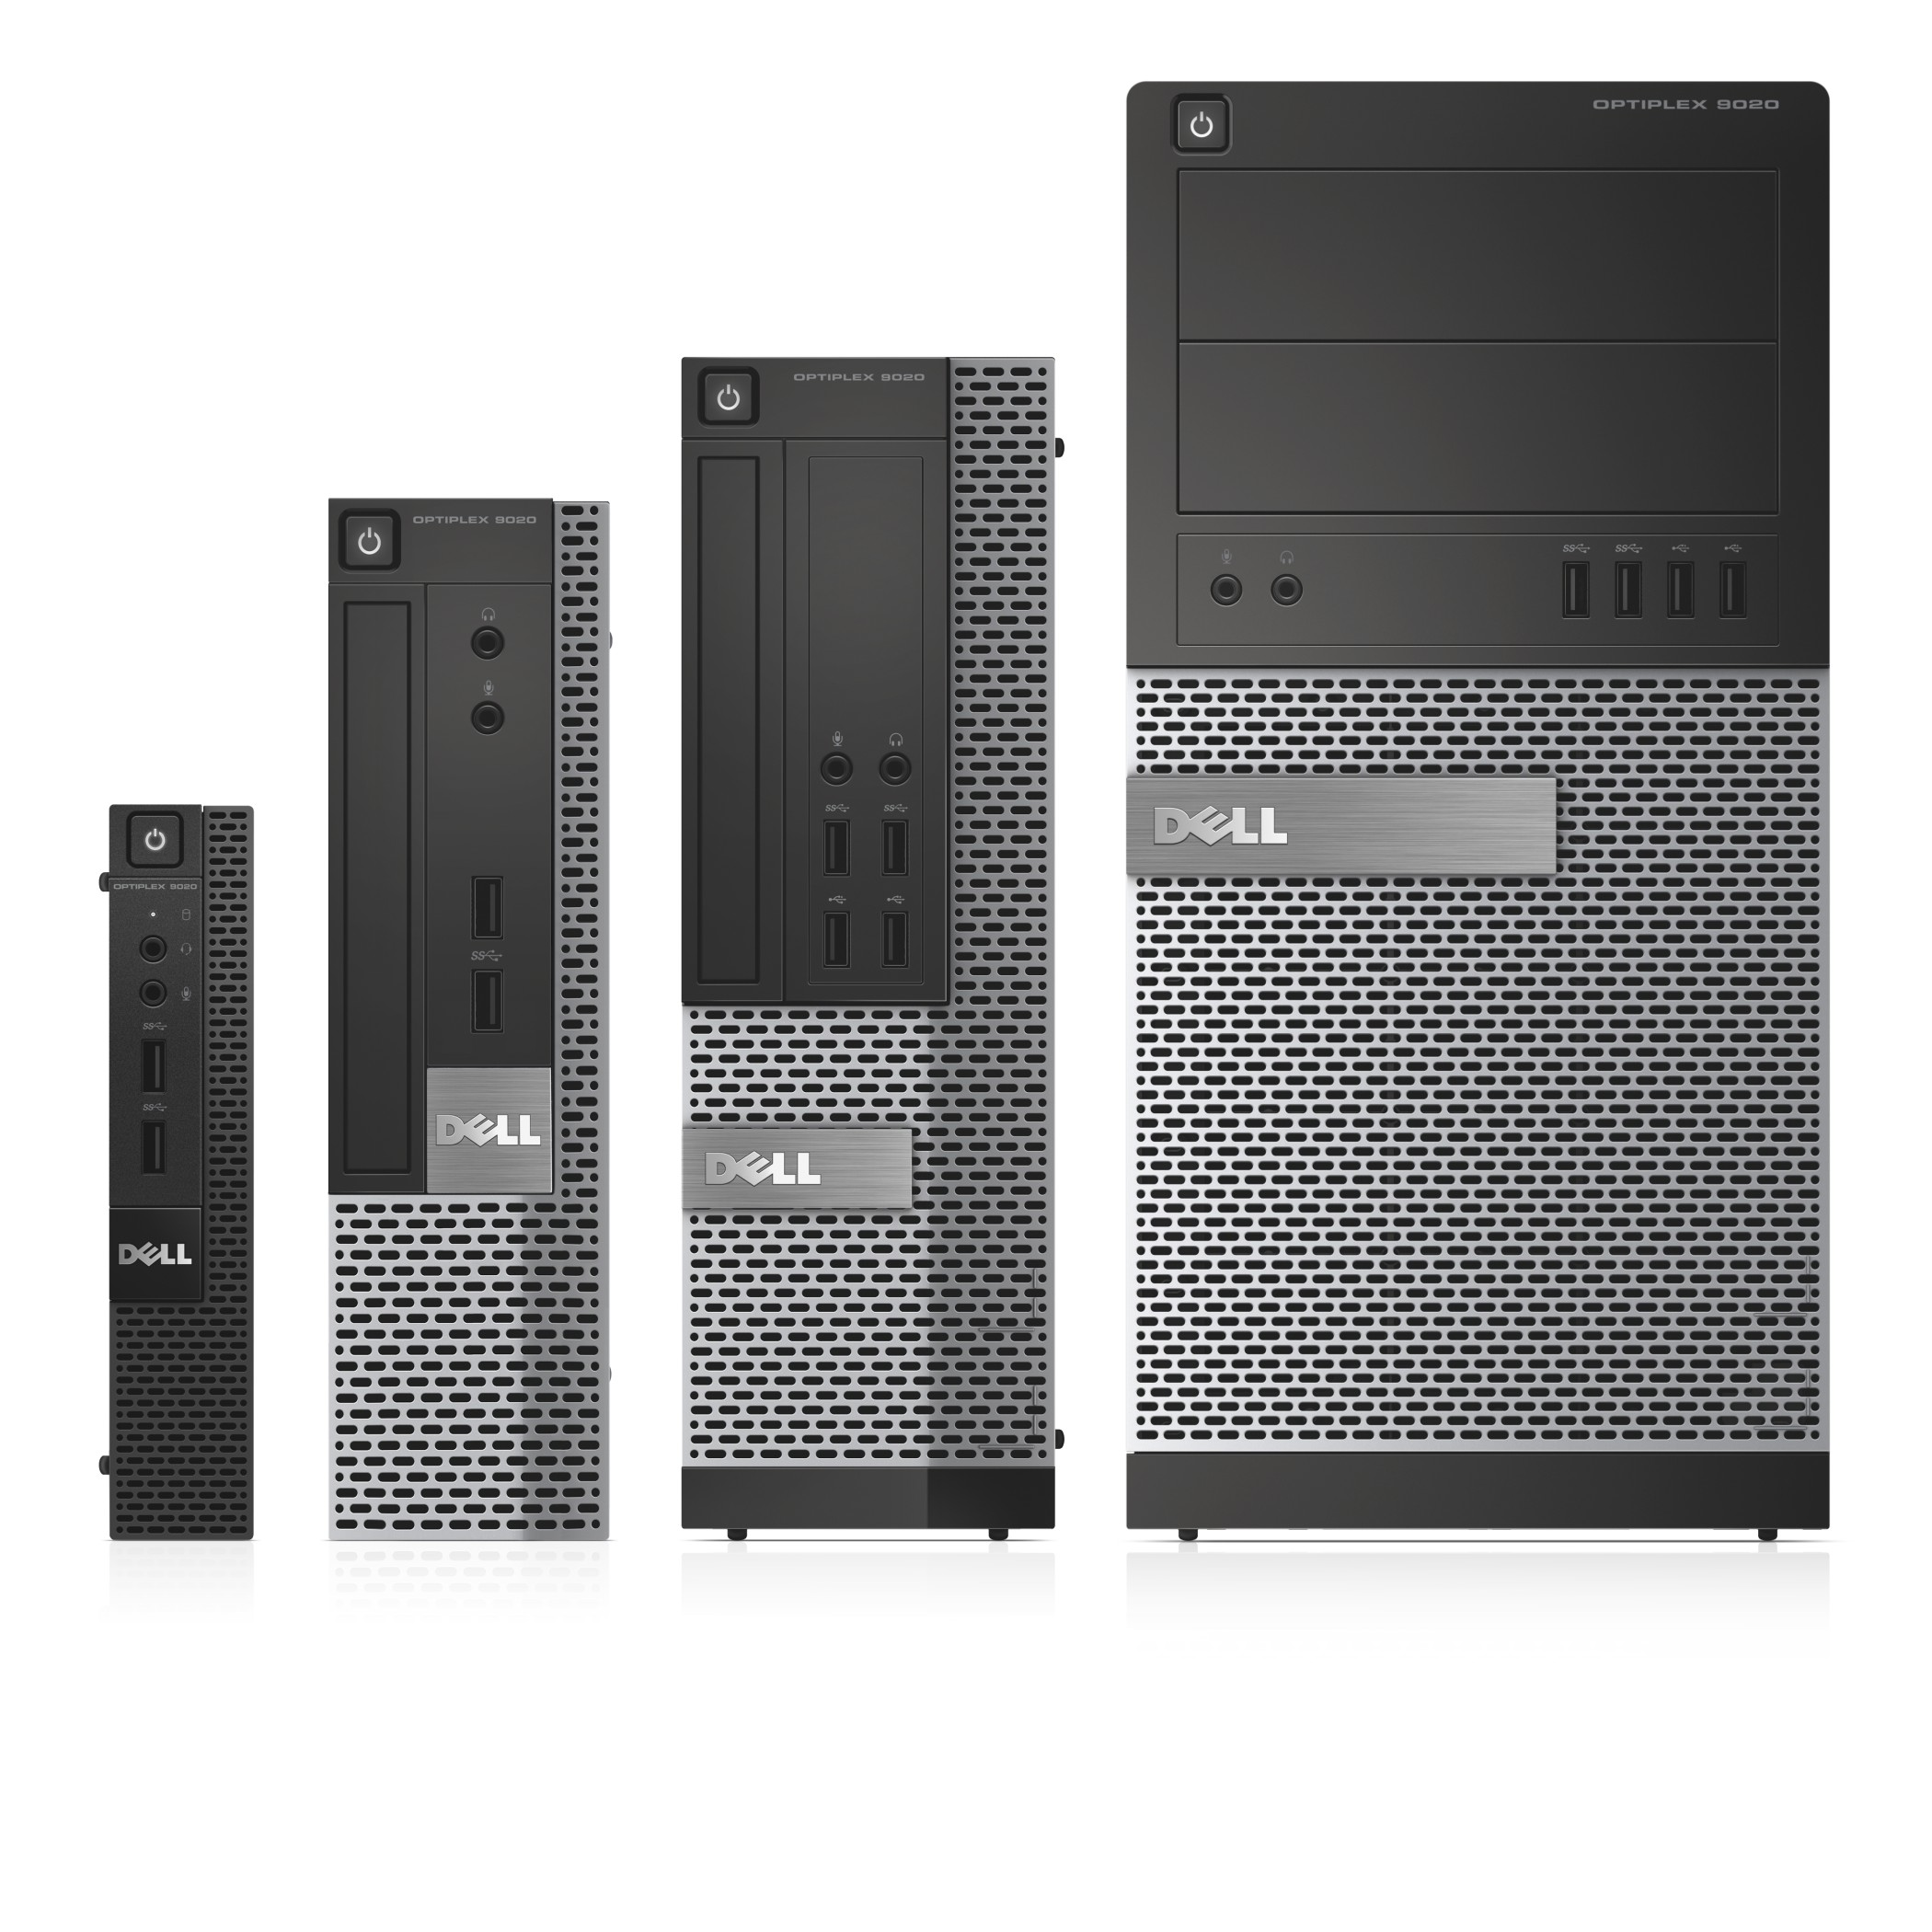 Dell Optiplex 9020 Desktop PC family